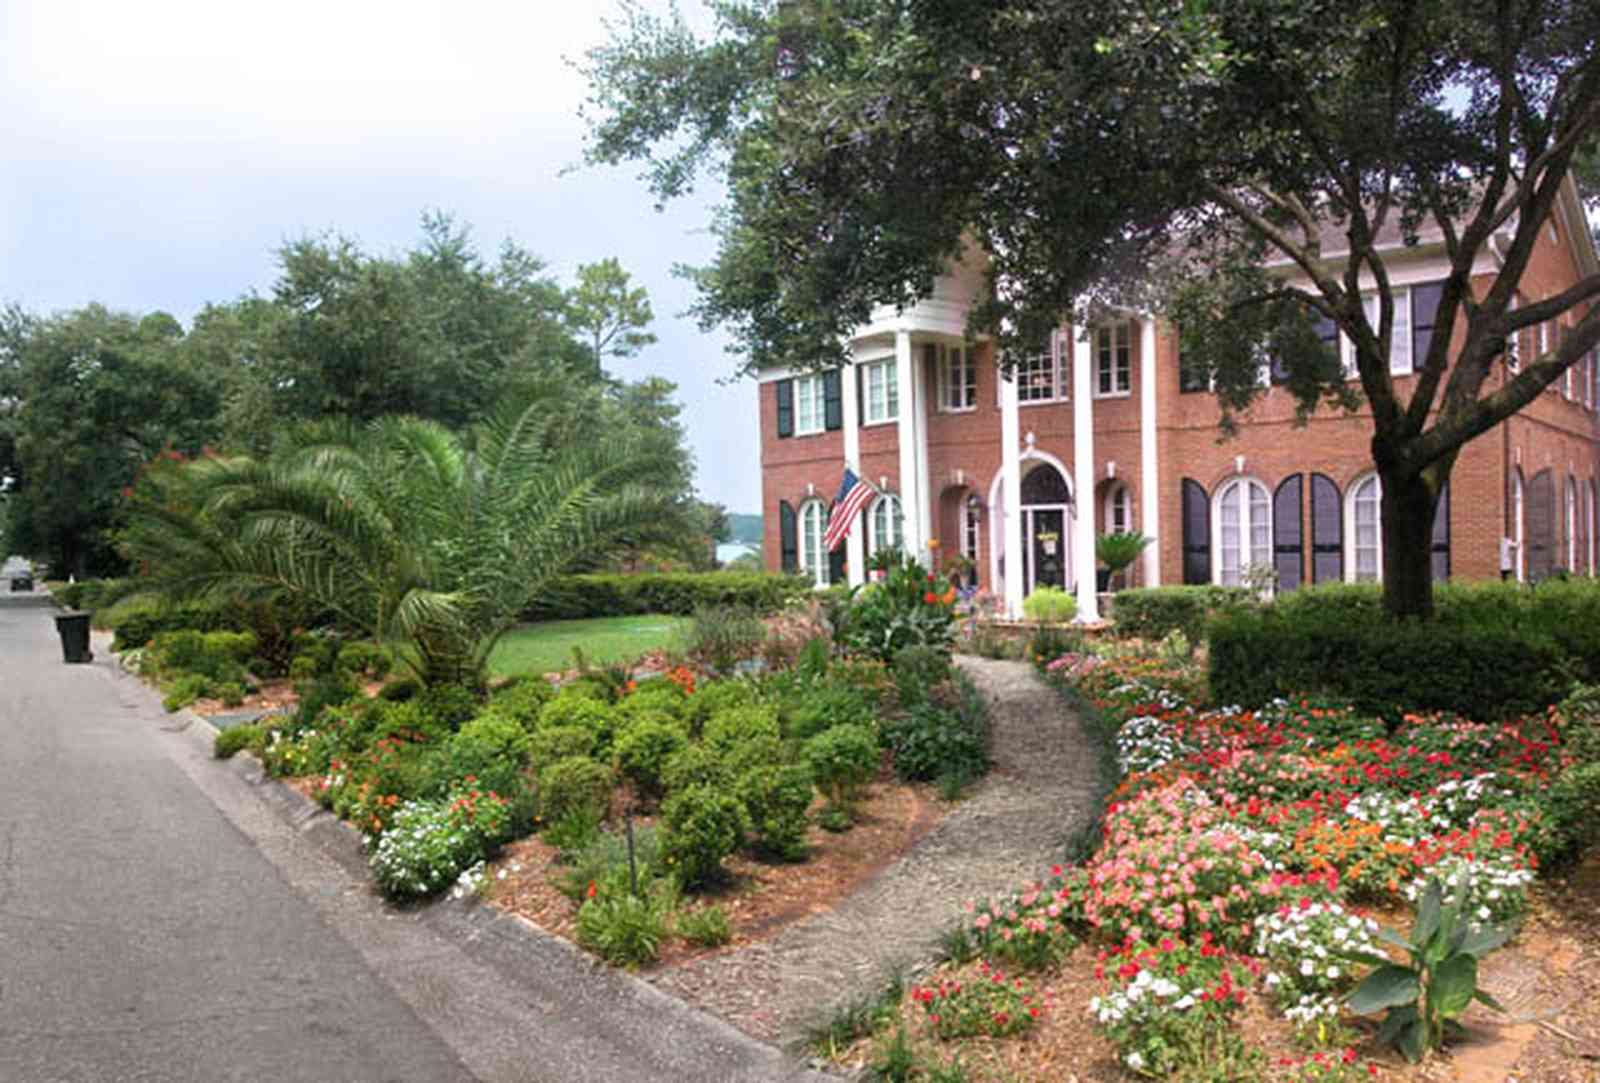 East-Hill:-2000-Whaley-Avenue_02.jpg:  red brick house, impatiens, box hedges, oak trees, columns, shutters, brick veneer, flower garden,